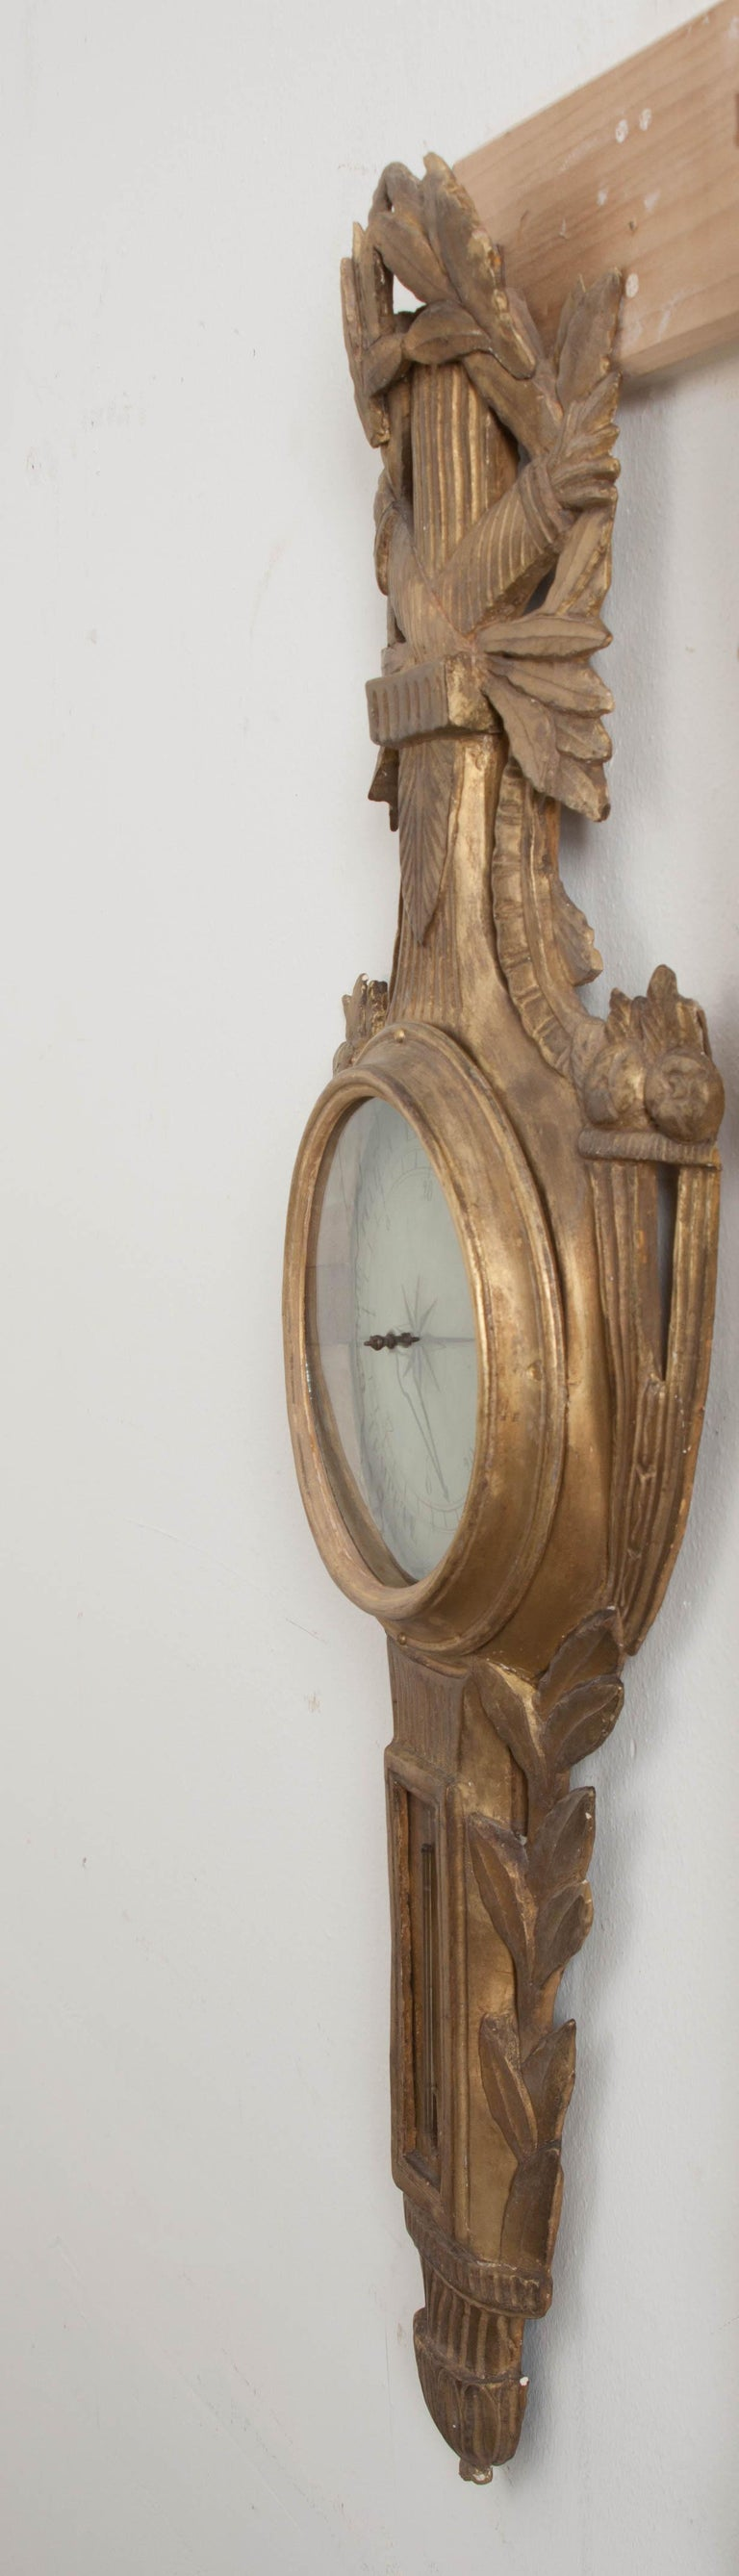 French Early 19th Century Louis XVI Gold Gilt Barometer For Sale 3